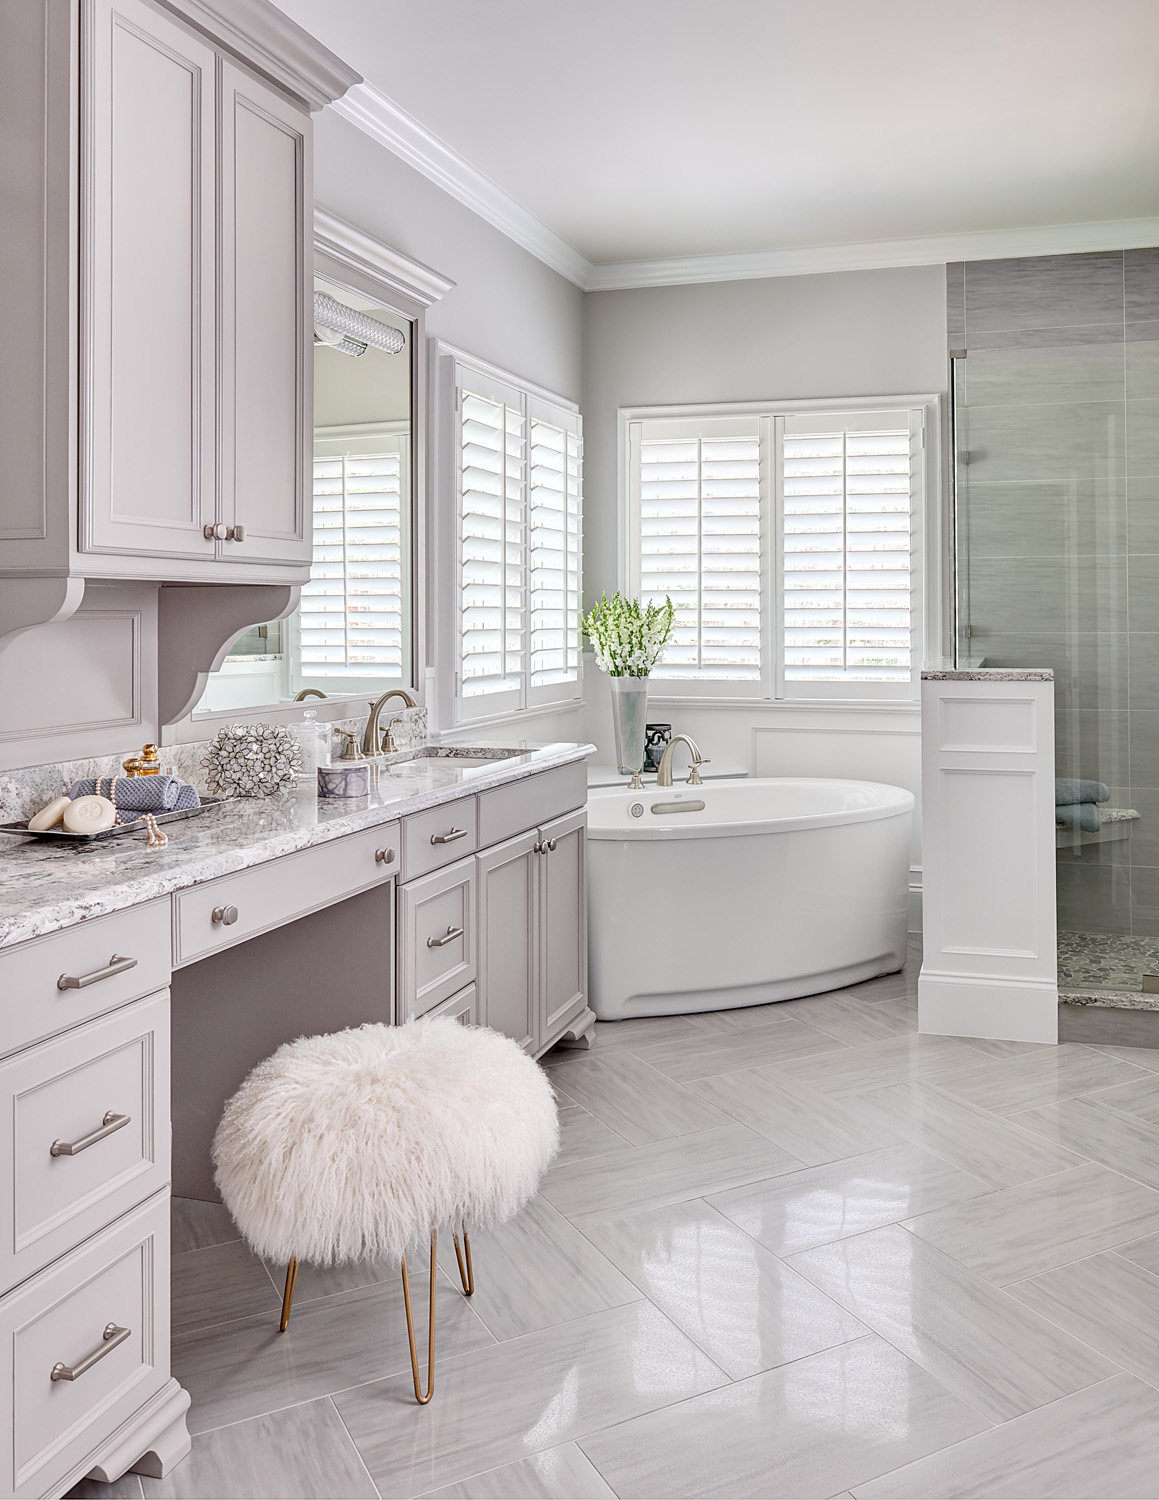 Master bathroom remodel with free-standing tub herringbone tile shutters on windows and custom cabinets with fluffy vanity stool